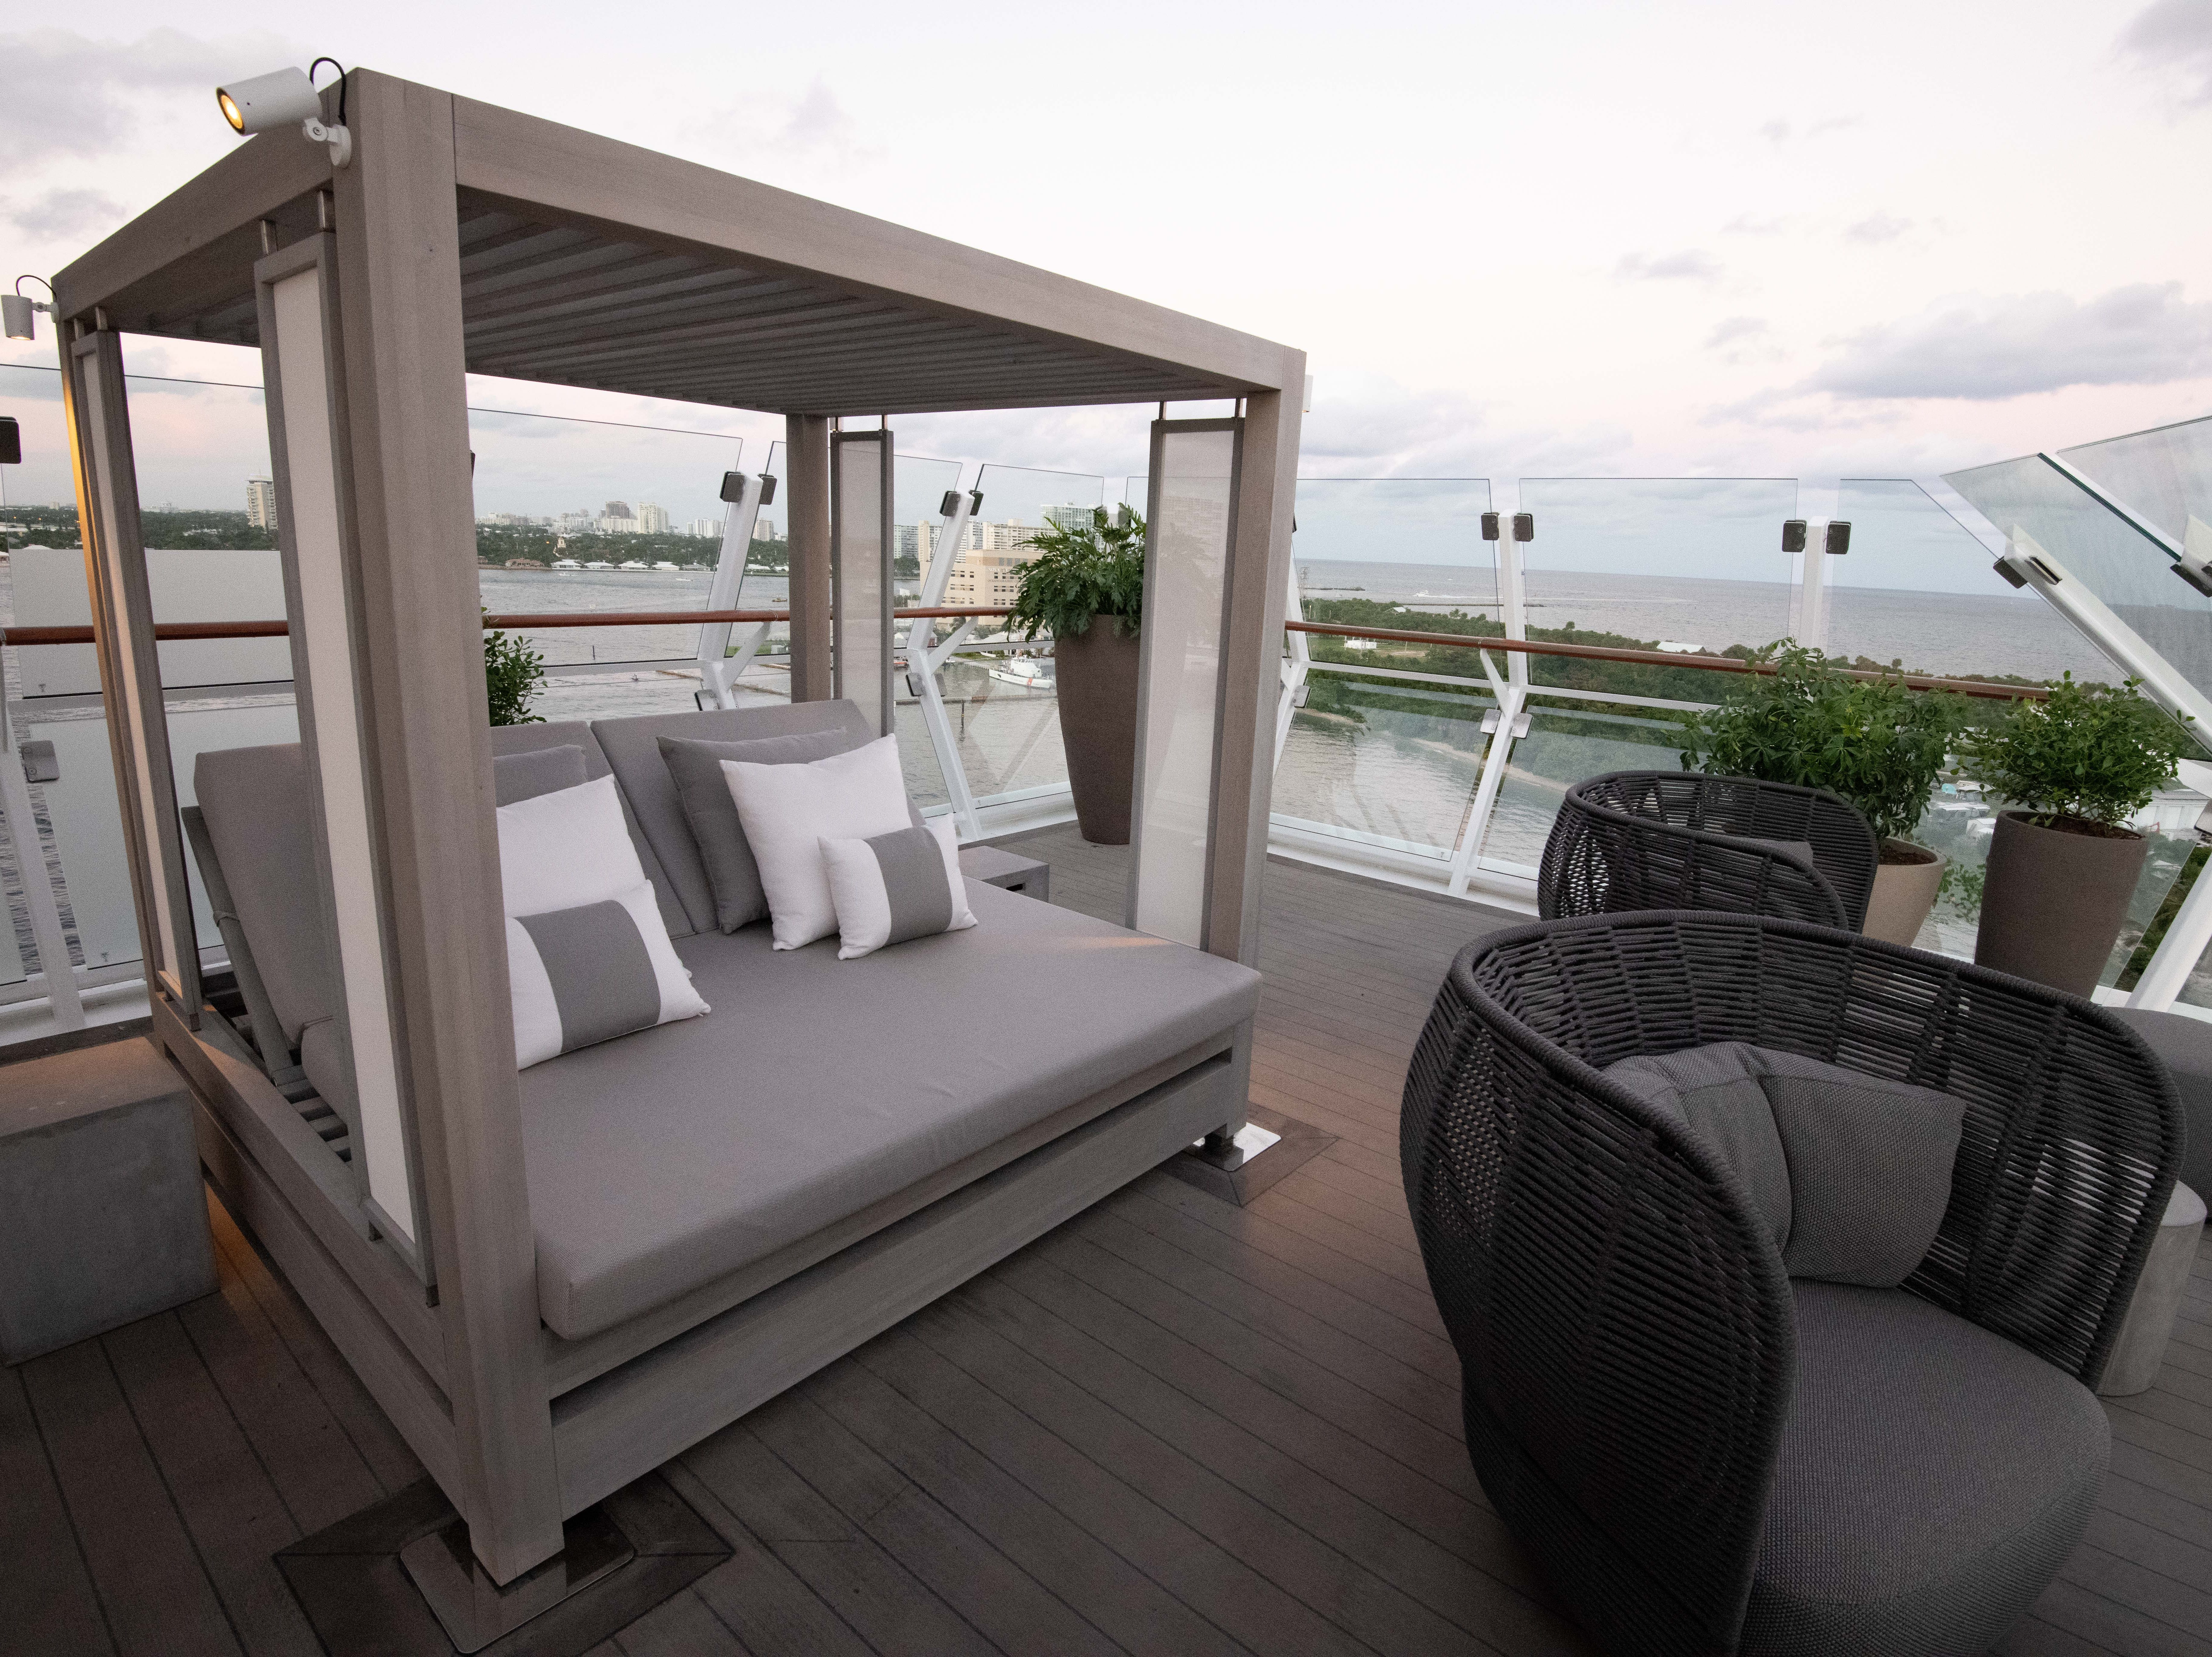 Day beds facing the sea are among the allures of the private balcony areas that come with Iconic Suites.